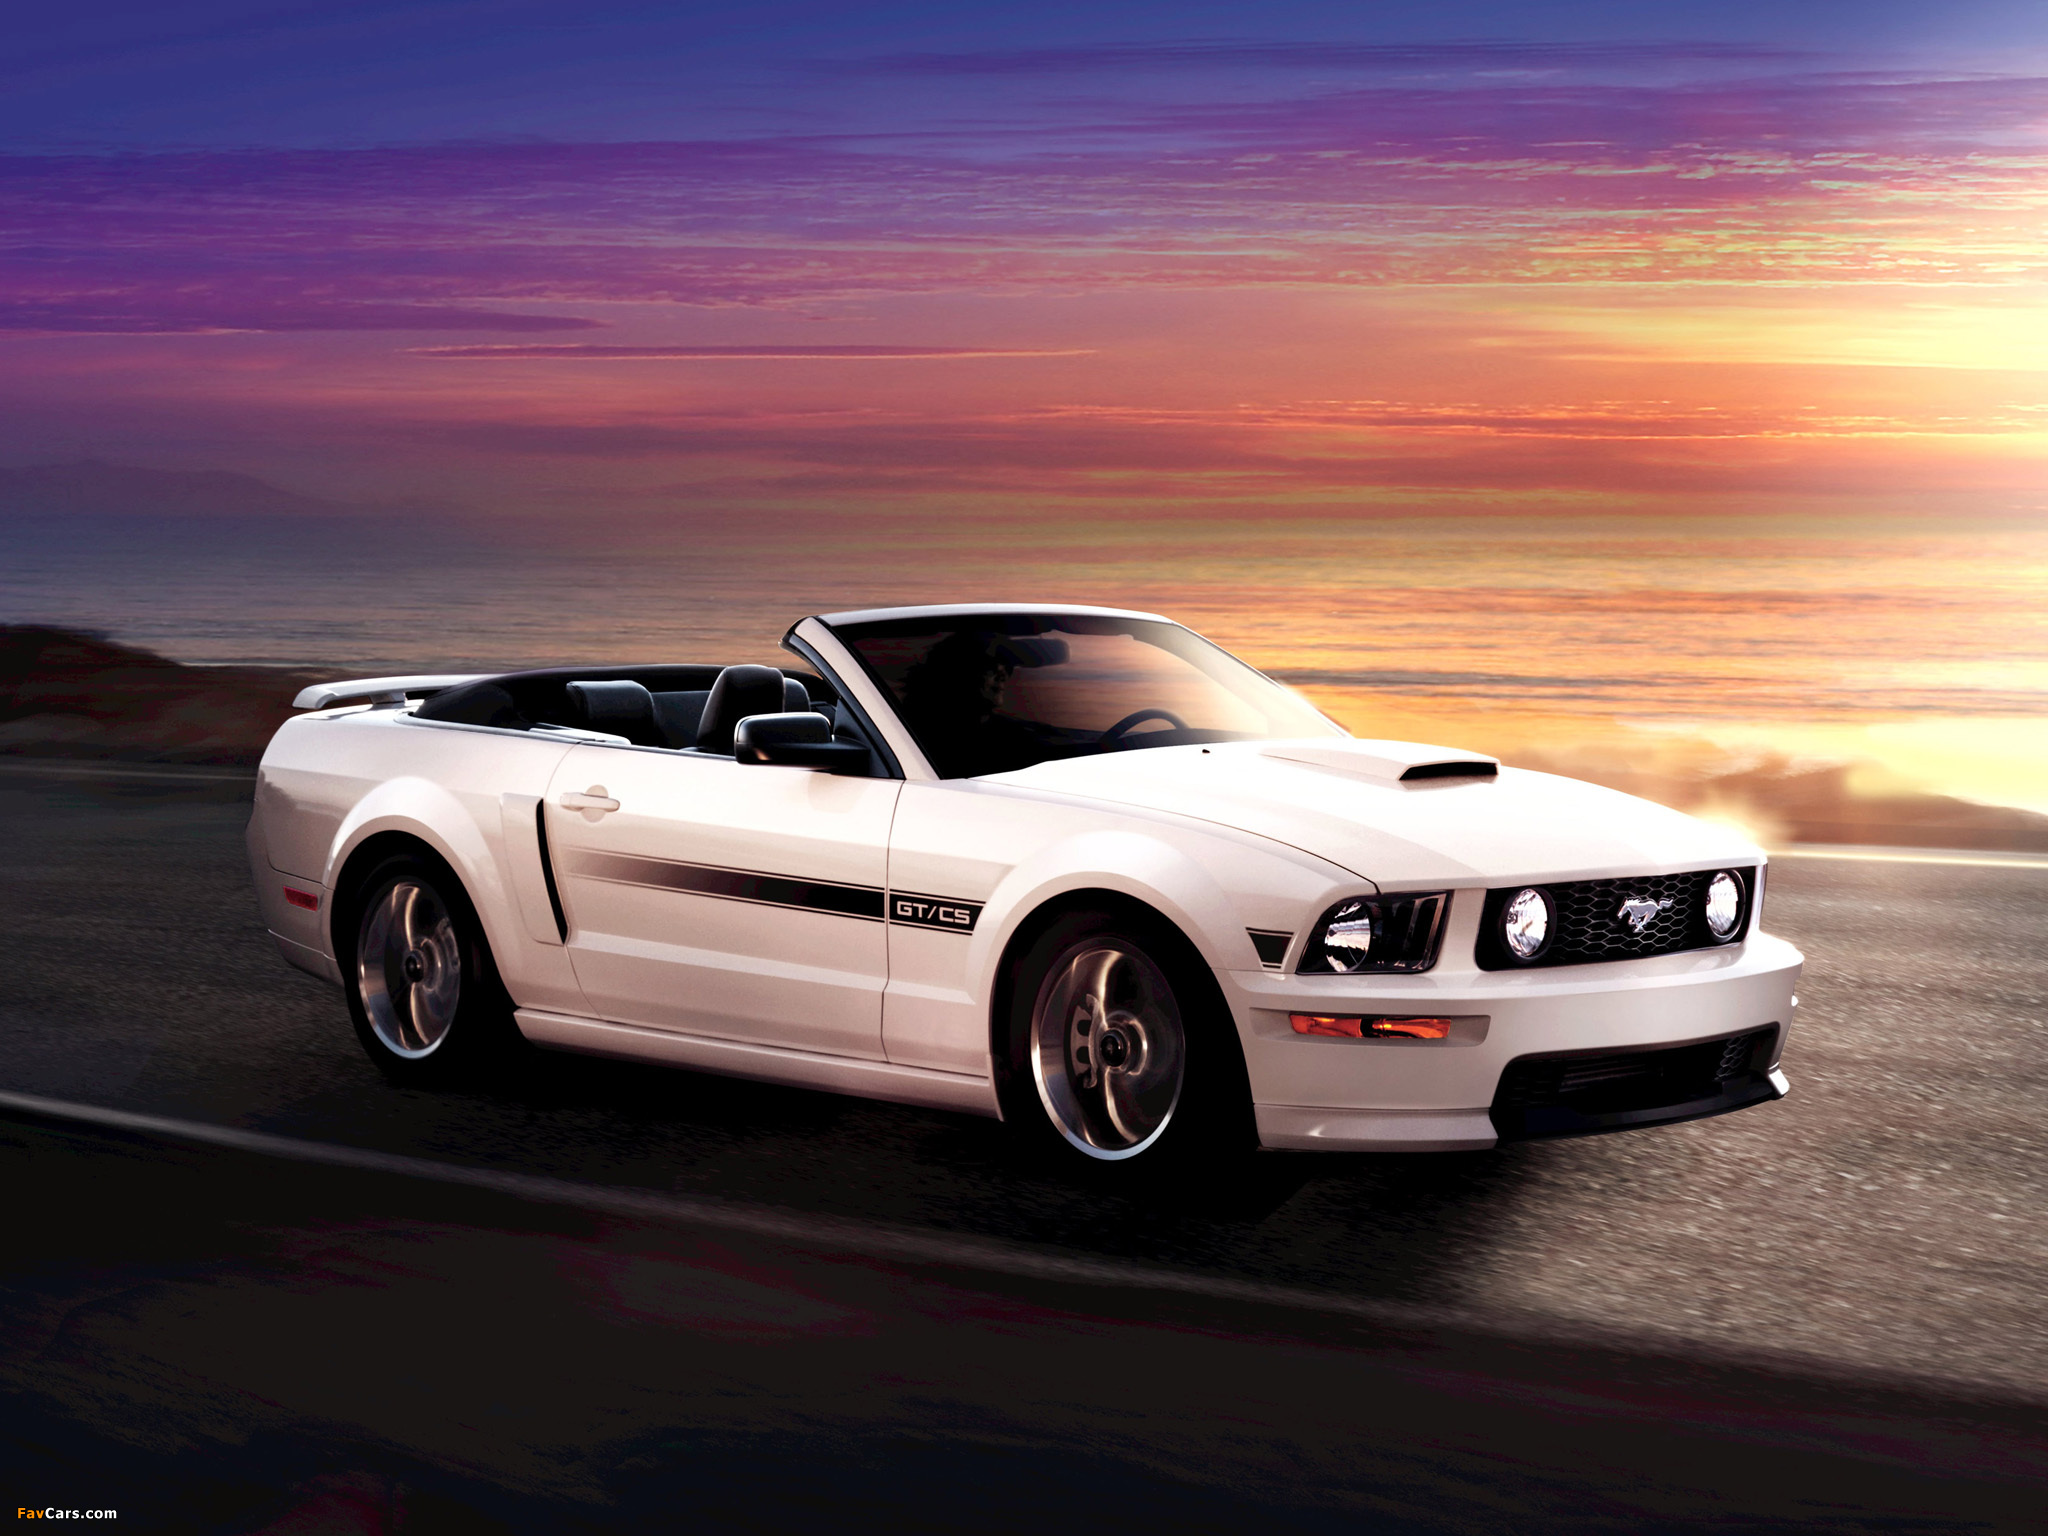 2007 Mustang >> Mustang GT California Special 2007 images (2048x1536)